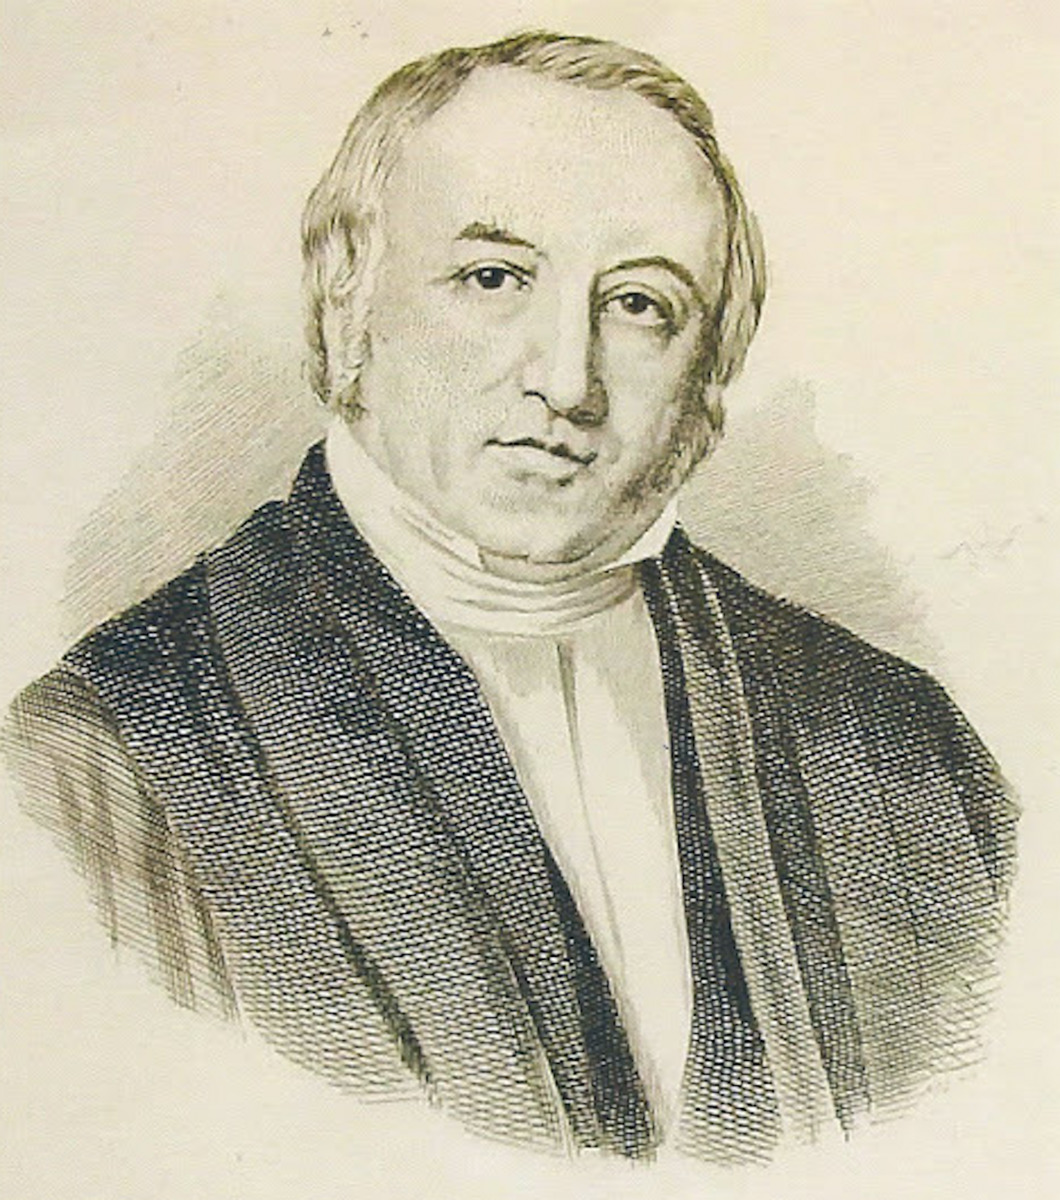 After his participation in the events of 1837-38 with the Patriots defending the principles of equality, justice and respect of common values in Quebec, Augustin-Norbert Morin, Commissioner of Crown Lands for the Government of Lower Canada, bought land in the Township of Abercrombie in 1842.<br /><br />He had a large house built by his friend On&eacute;sime Lamoureux on the top of a hill overlooking the North River. To help settlers, he added a sawmill, carding room and flour mill. He gave the territory the name of his wife, Ad&egrave;le. The mission of Sainte-Ad&egrave;le was created in 1846. Between 1848 and 1852, the parish priest of Saint-J&eacute;r&ocirc;me used the Morin residence to celebrate mass four times a year as well as for baptisms and weddings.<br /><br />In 1861, he sold his property and farmland to Doctor Joseph-Benjamin Lachaine. On&eacute;sime Lamoureux took possession of seven acres of land in 1864. Prime Minister of Lower Canada and superior court judge, Morin died in 1865 in his former residence in Sainte-Ad&egrave;le that he never occupied.<br /><br />The mill operated by Camille Lachaine was sold in 1900 to Charles R. Burligh before being sold two years later to the North Lumber and Pulp Company, who in turn sold it to the Rolland Paper Company.<br /><br />Despite some setbacks, the Lamoureux family remained there until the 1980s. Over time, the house was used in various ways. This magnificent property with its traditional Qu&eacute;b&eacute;cois architectural style reflects the influence and work of the Honourable Augustin-Norbert Morin while here in Sainte-Ad&egrave;le.